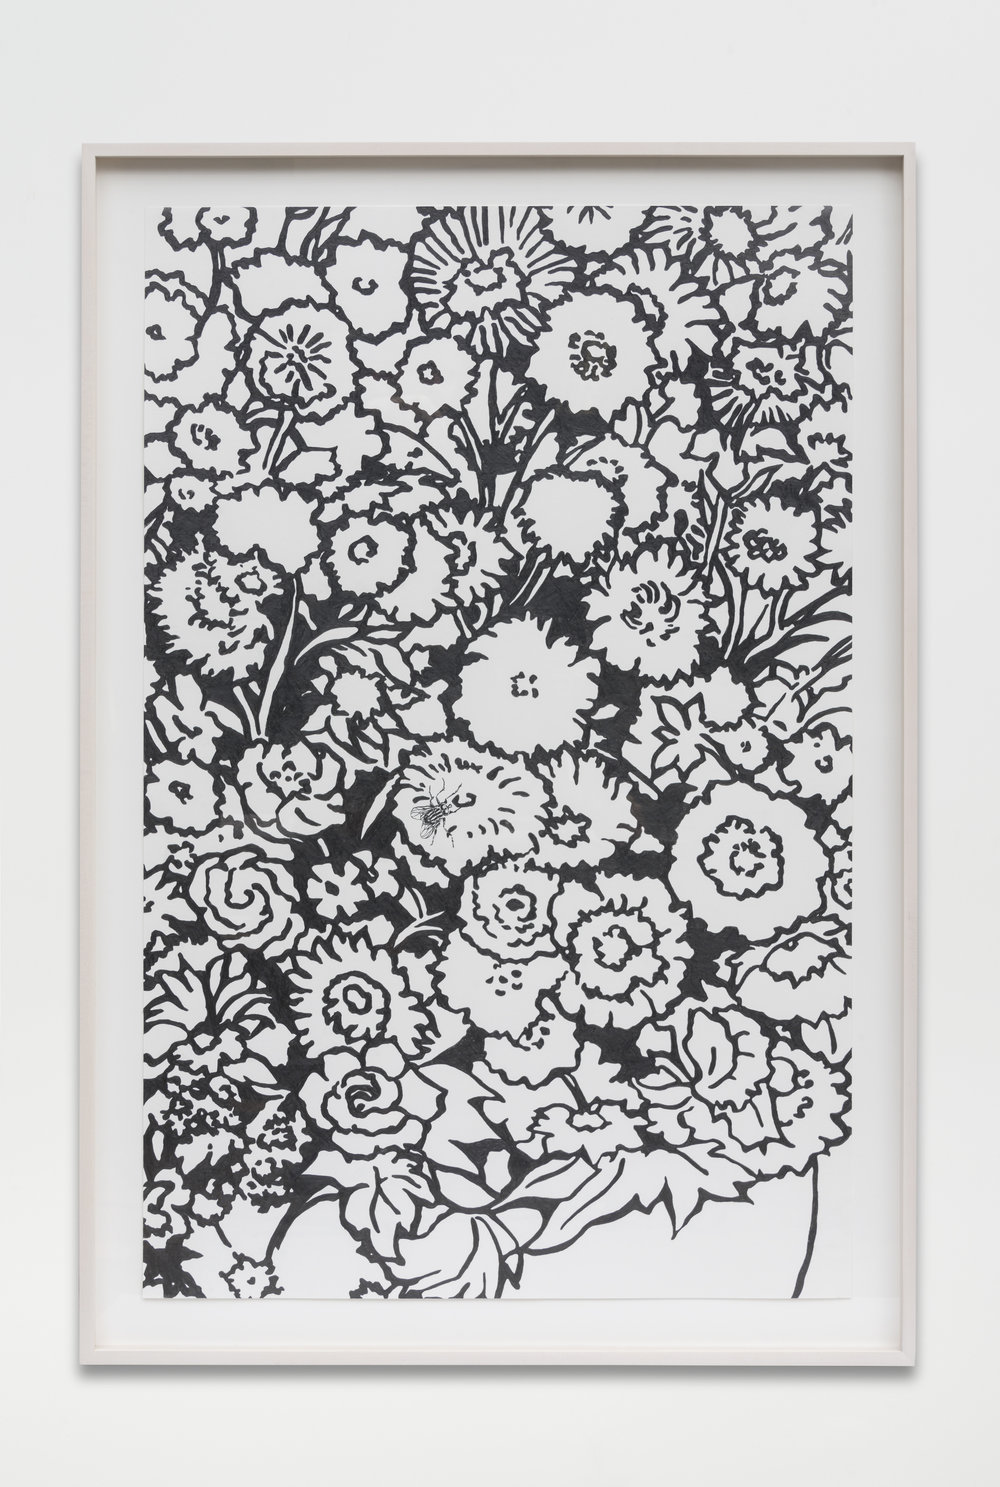 Nathan Mabry, Bouquet (For Edgar), 2017 graphite on paper 120,7 x 82,5 x 5 cm - 47 1/2 x 32 1/2 x 2 inches (framed)